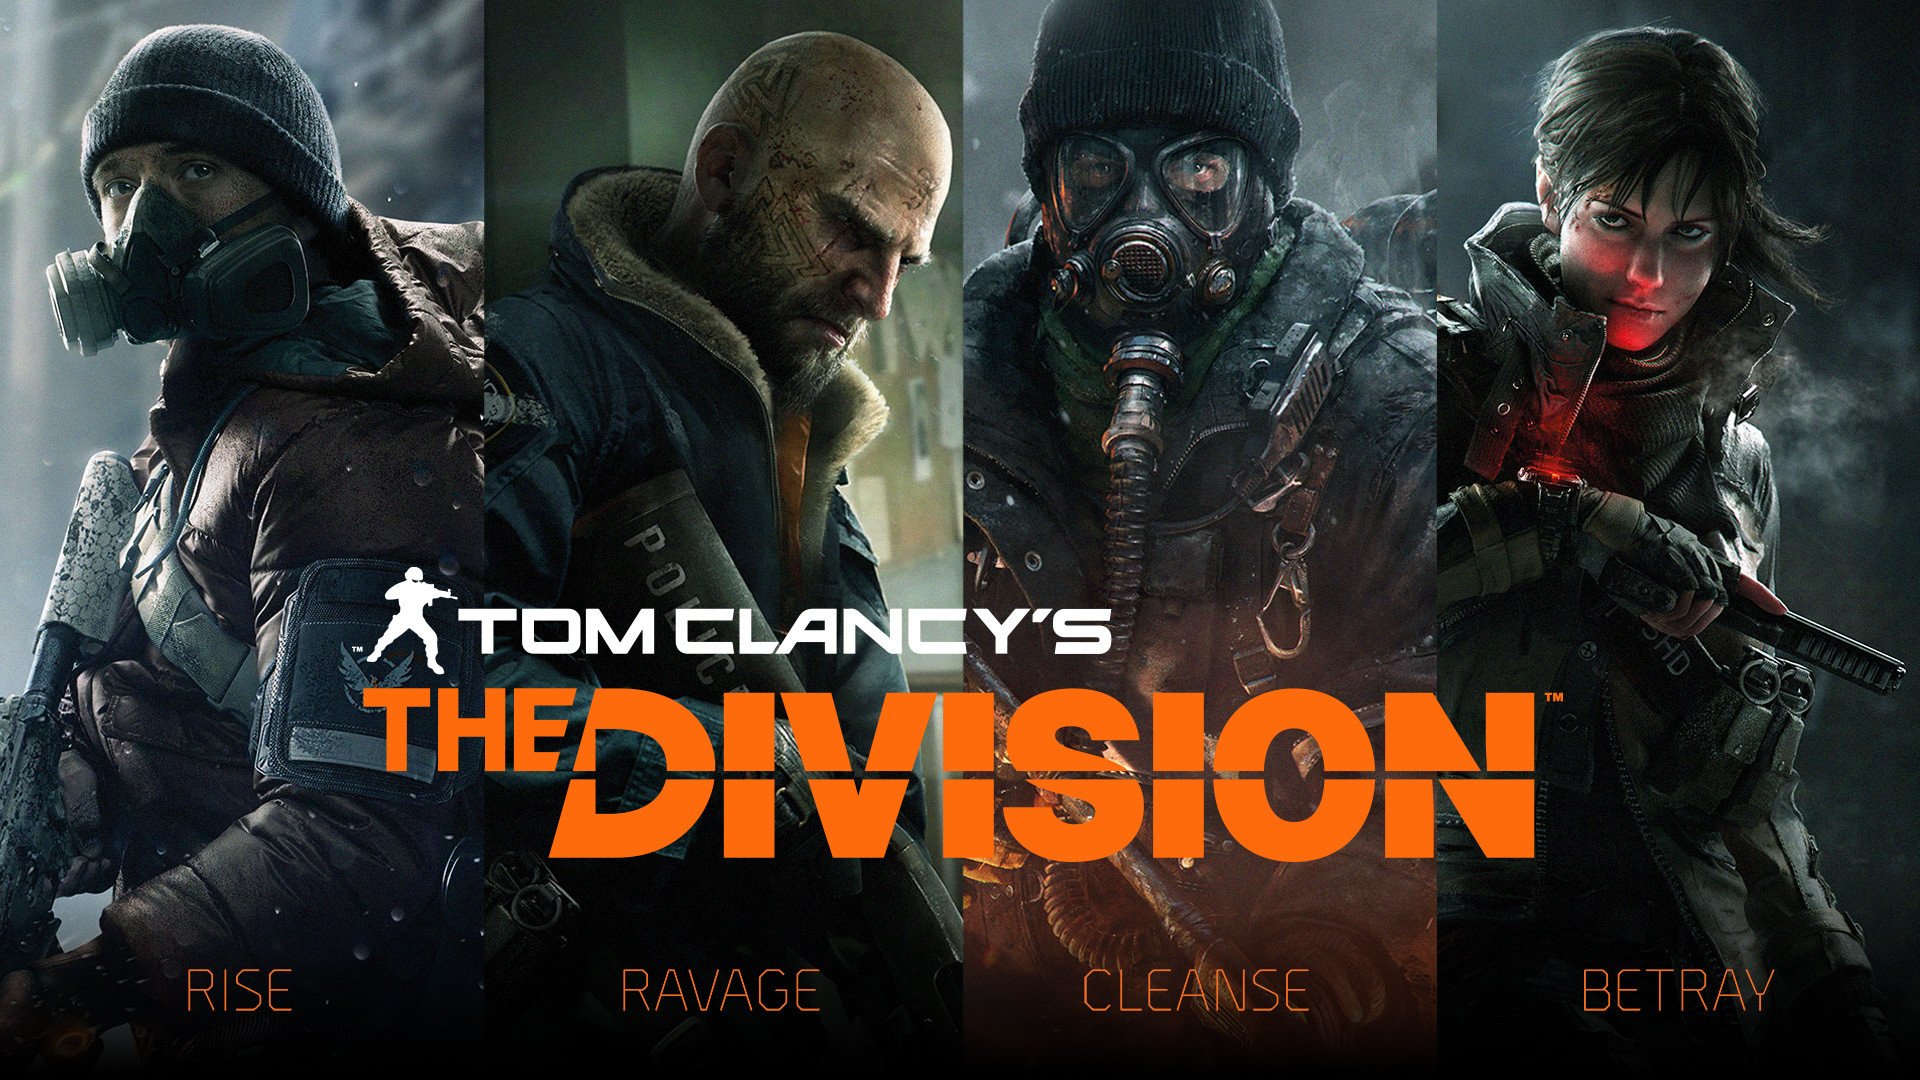 tom clancys the division poster – 1080 x 1920 HD Backgrounds, High  Definition wallpapers for